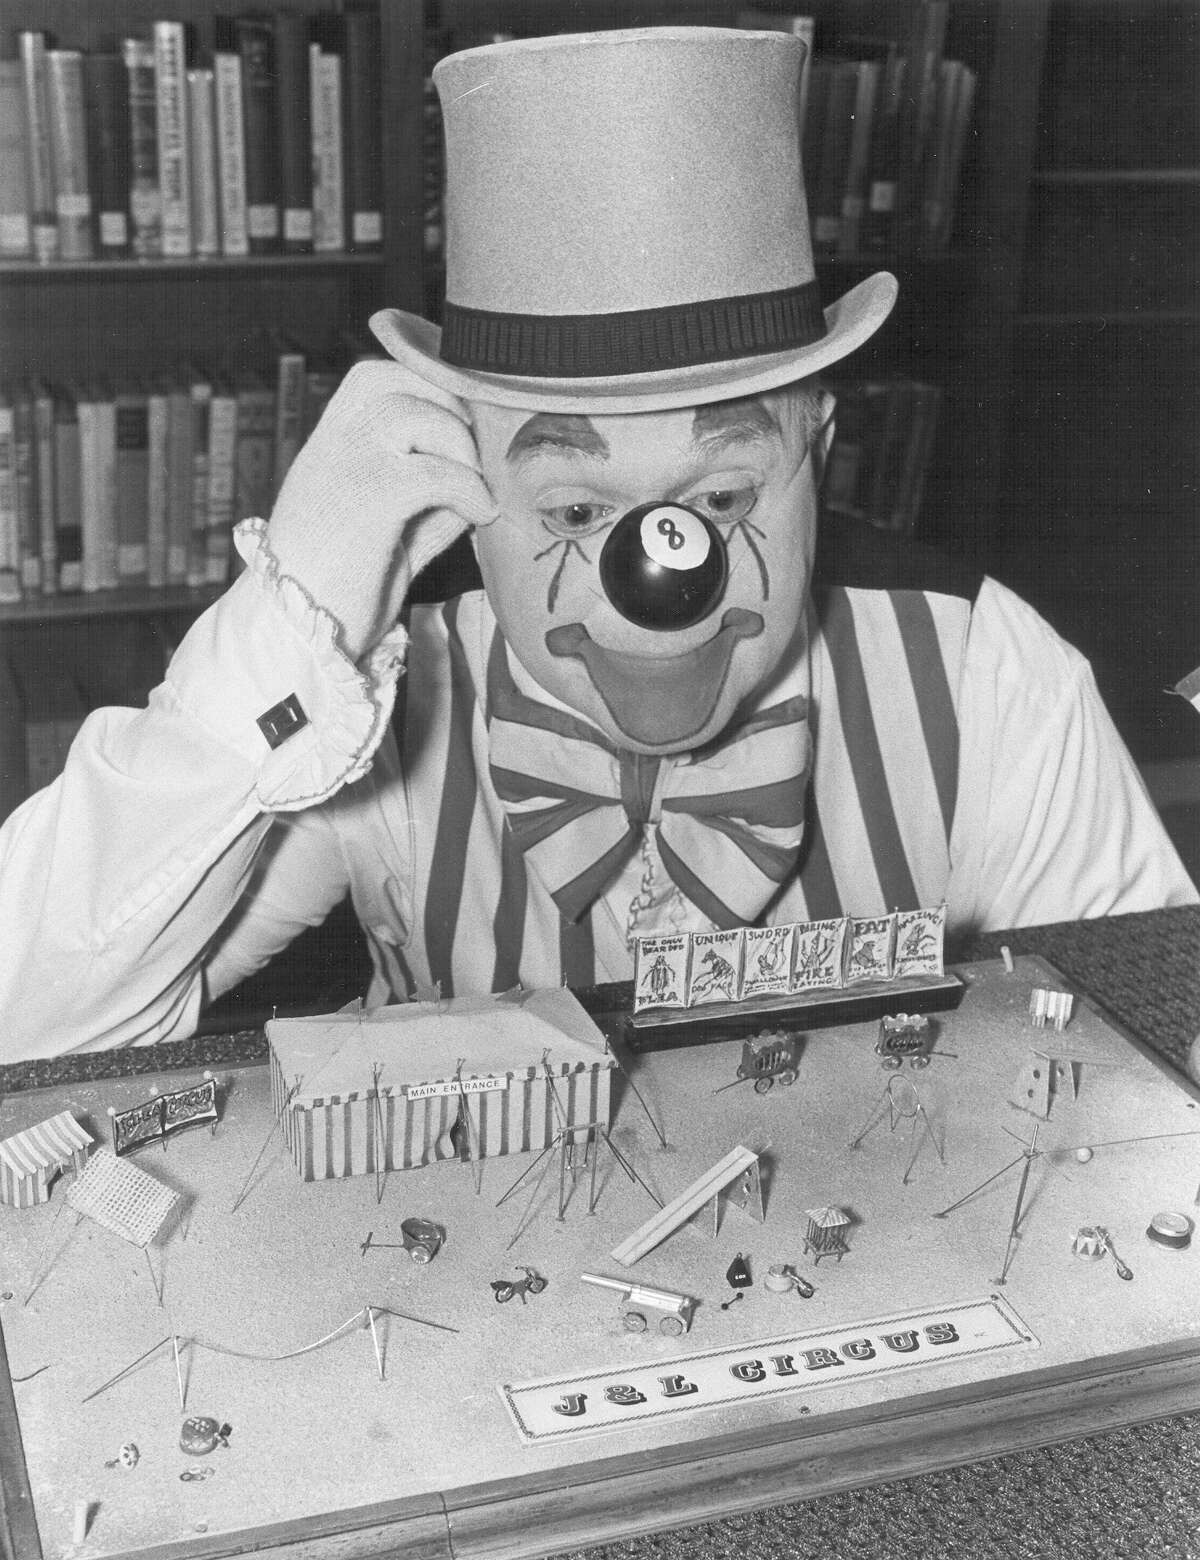 Eight Ball the clown poses with his flea circus at the Hertzberg Circus Museum on Oct. 17, 1989.